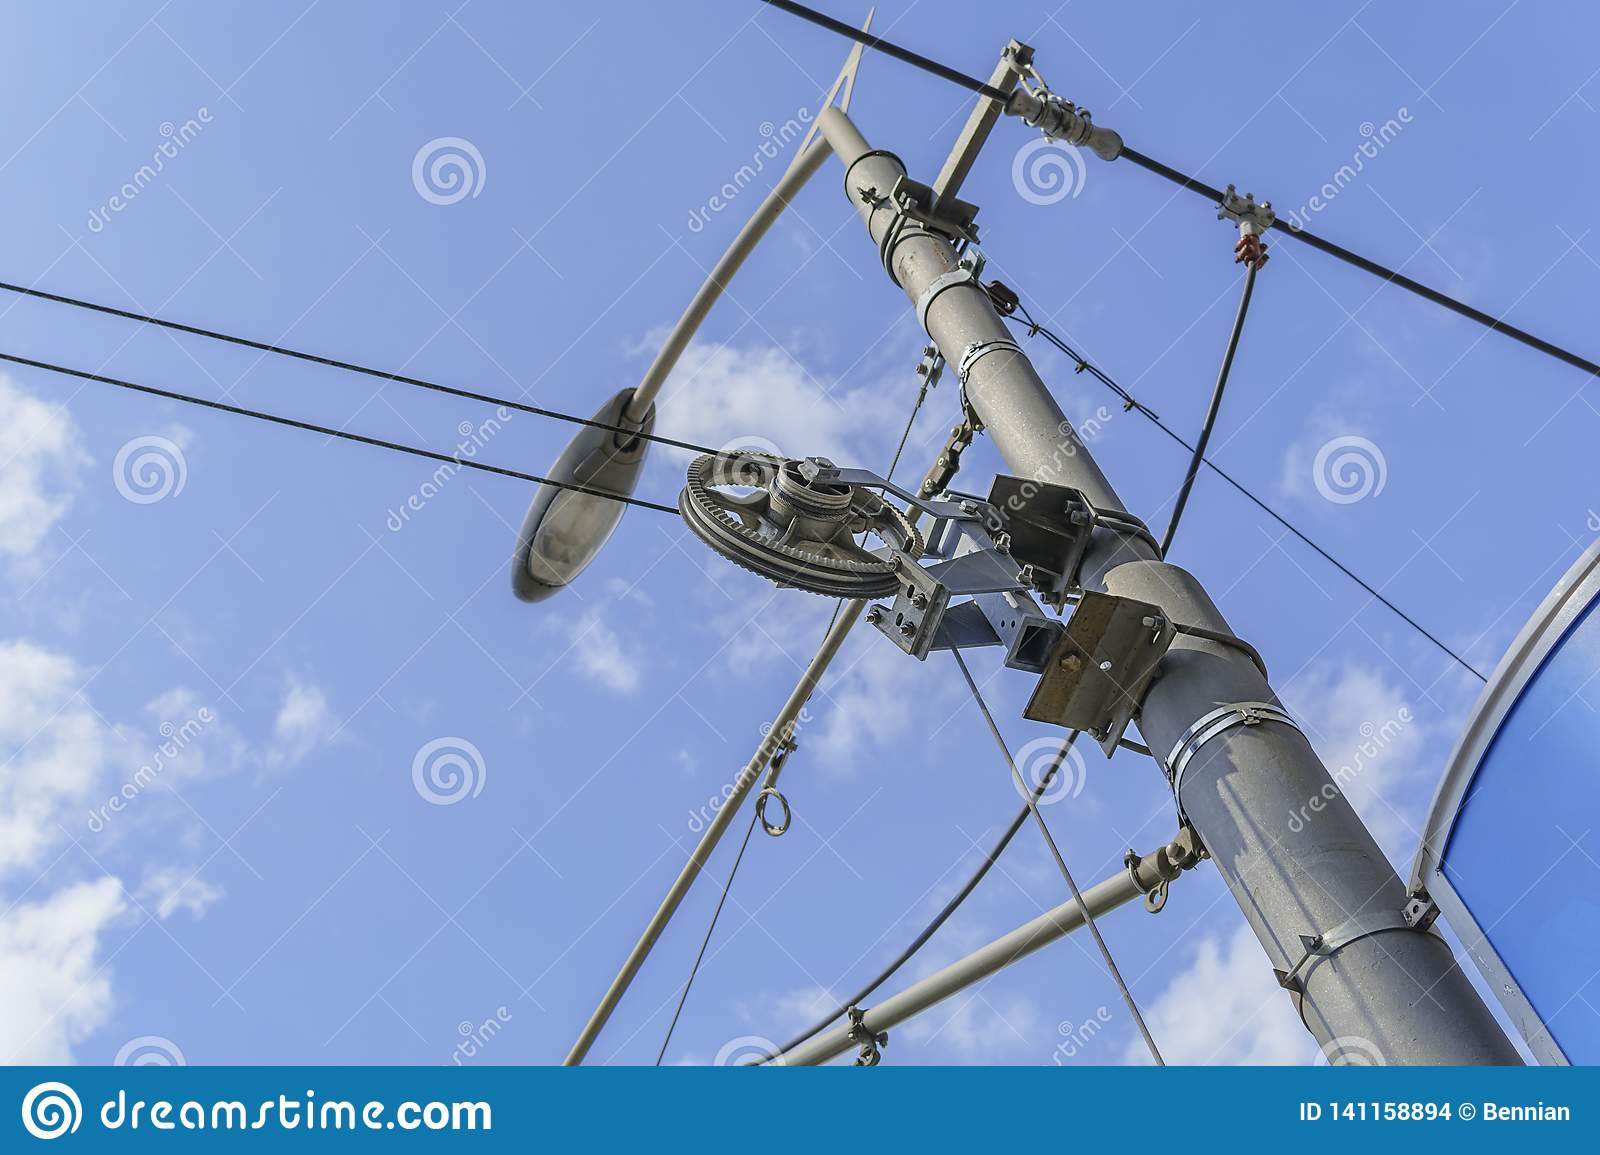 hight resolution of electricity pole and street light complicated wiring on the lamppost with sky background